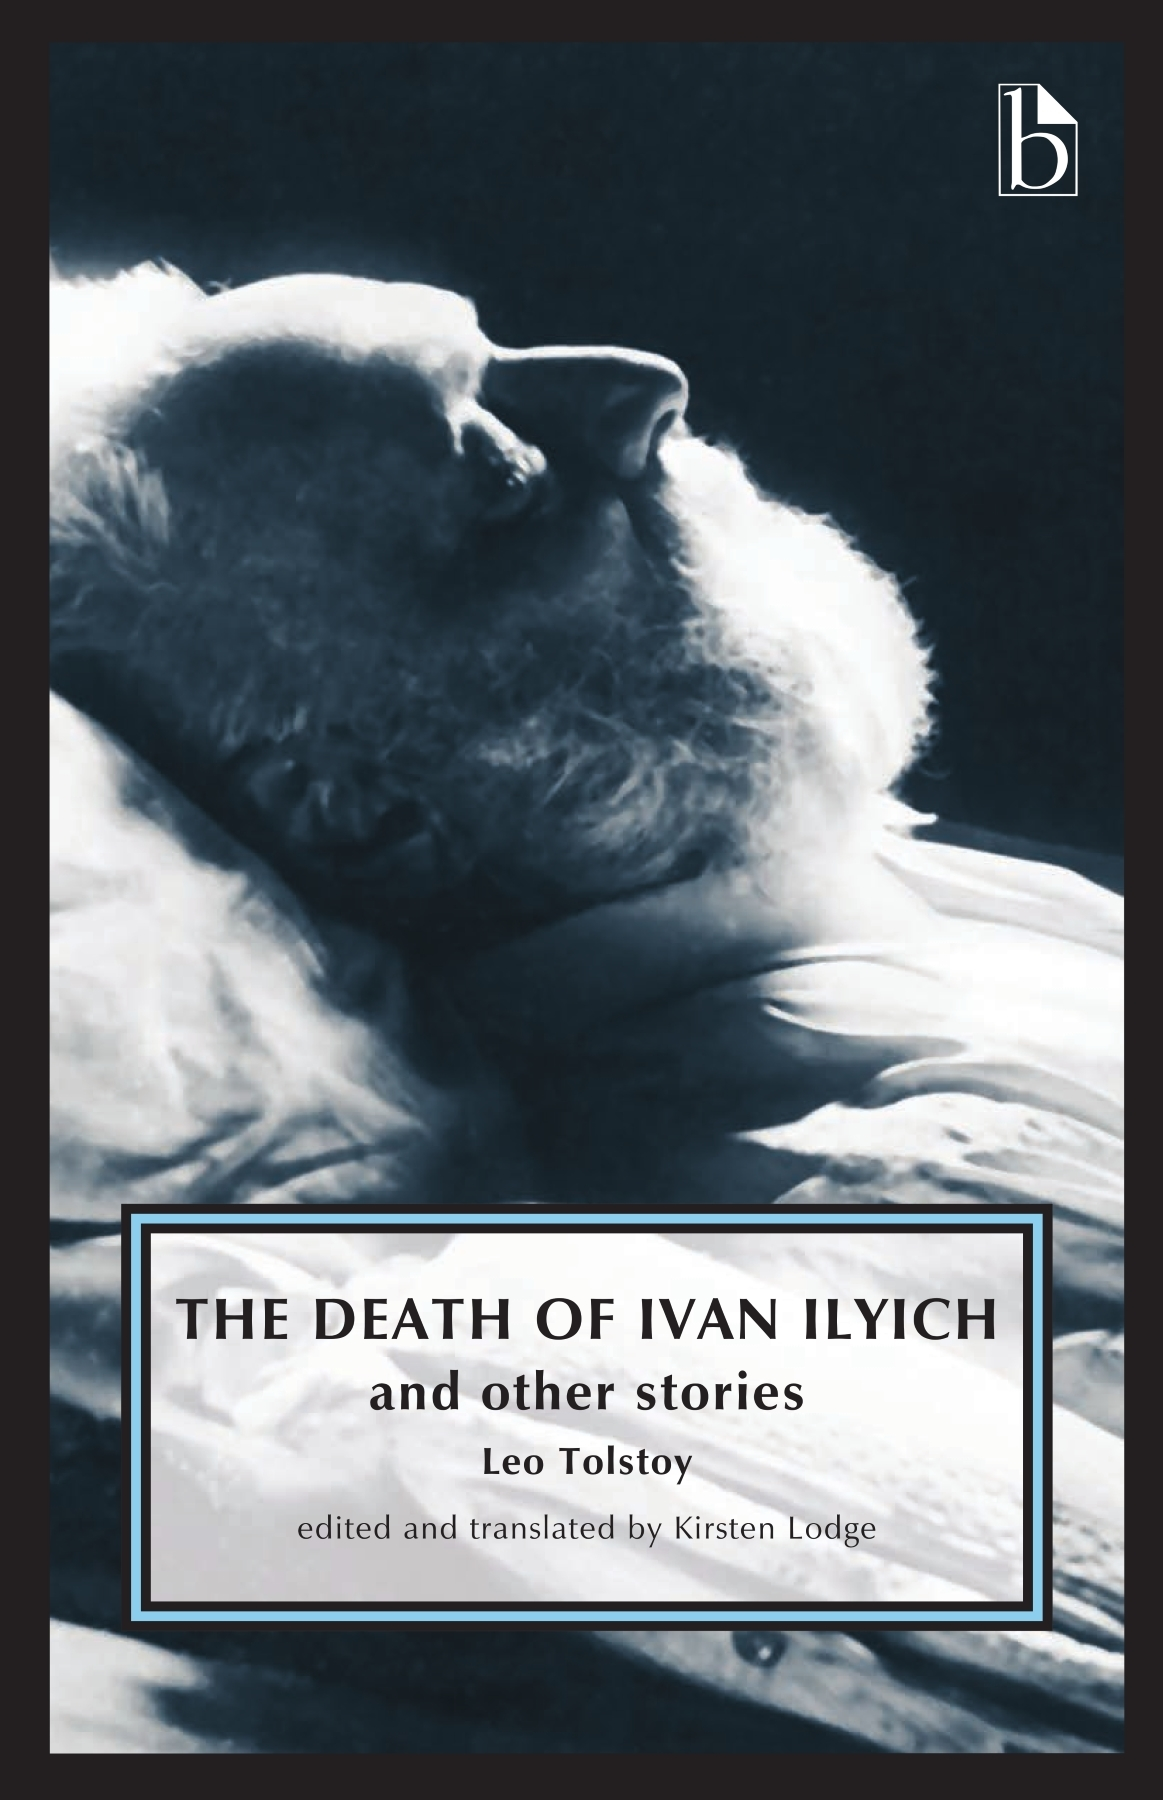 the death of ivan ilyich broadview press the death of ivan ilyich and other stories written